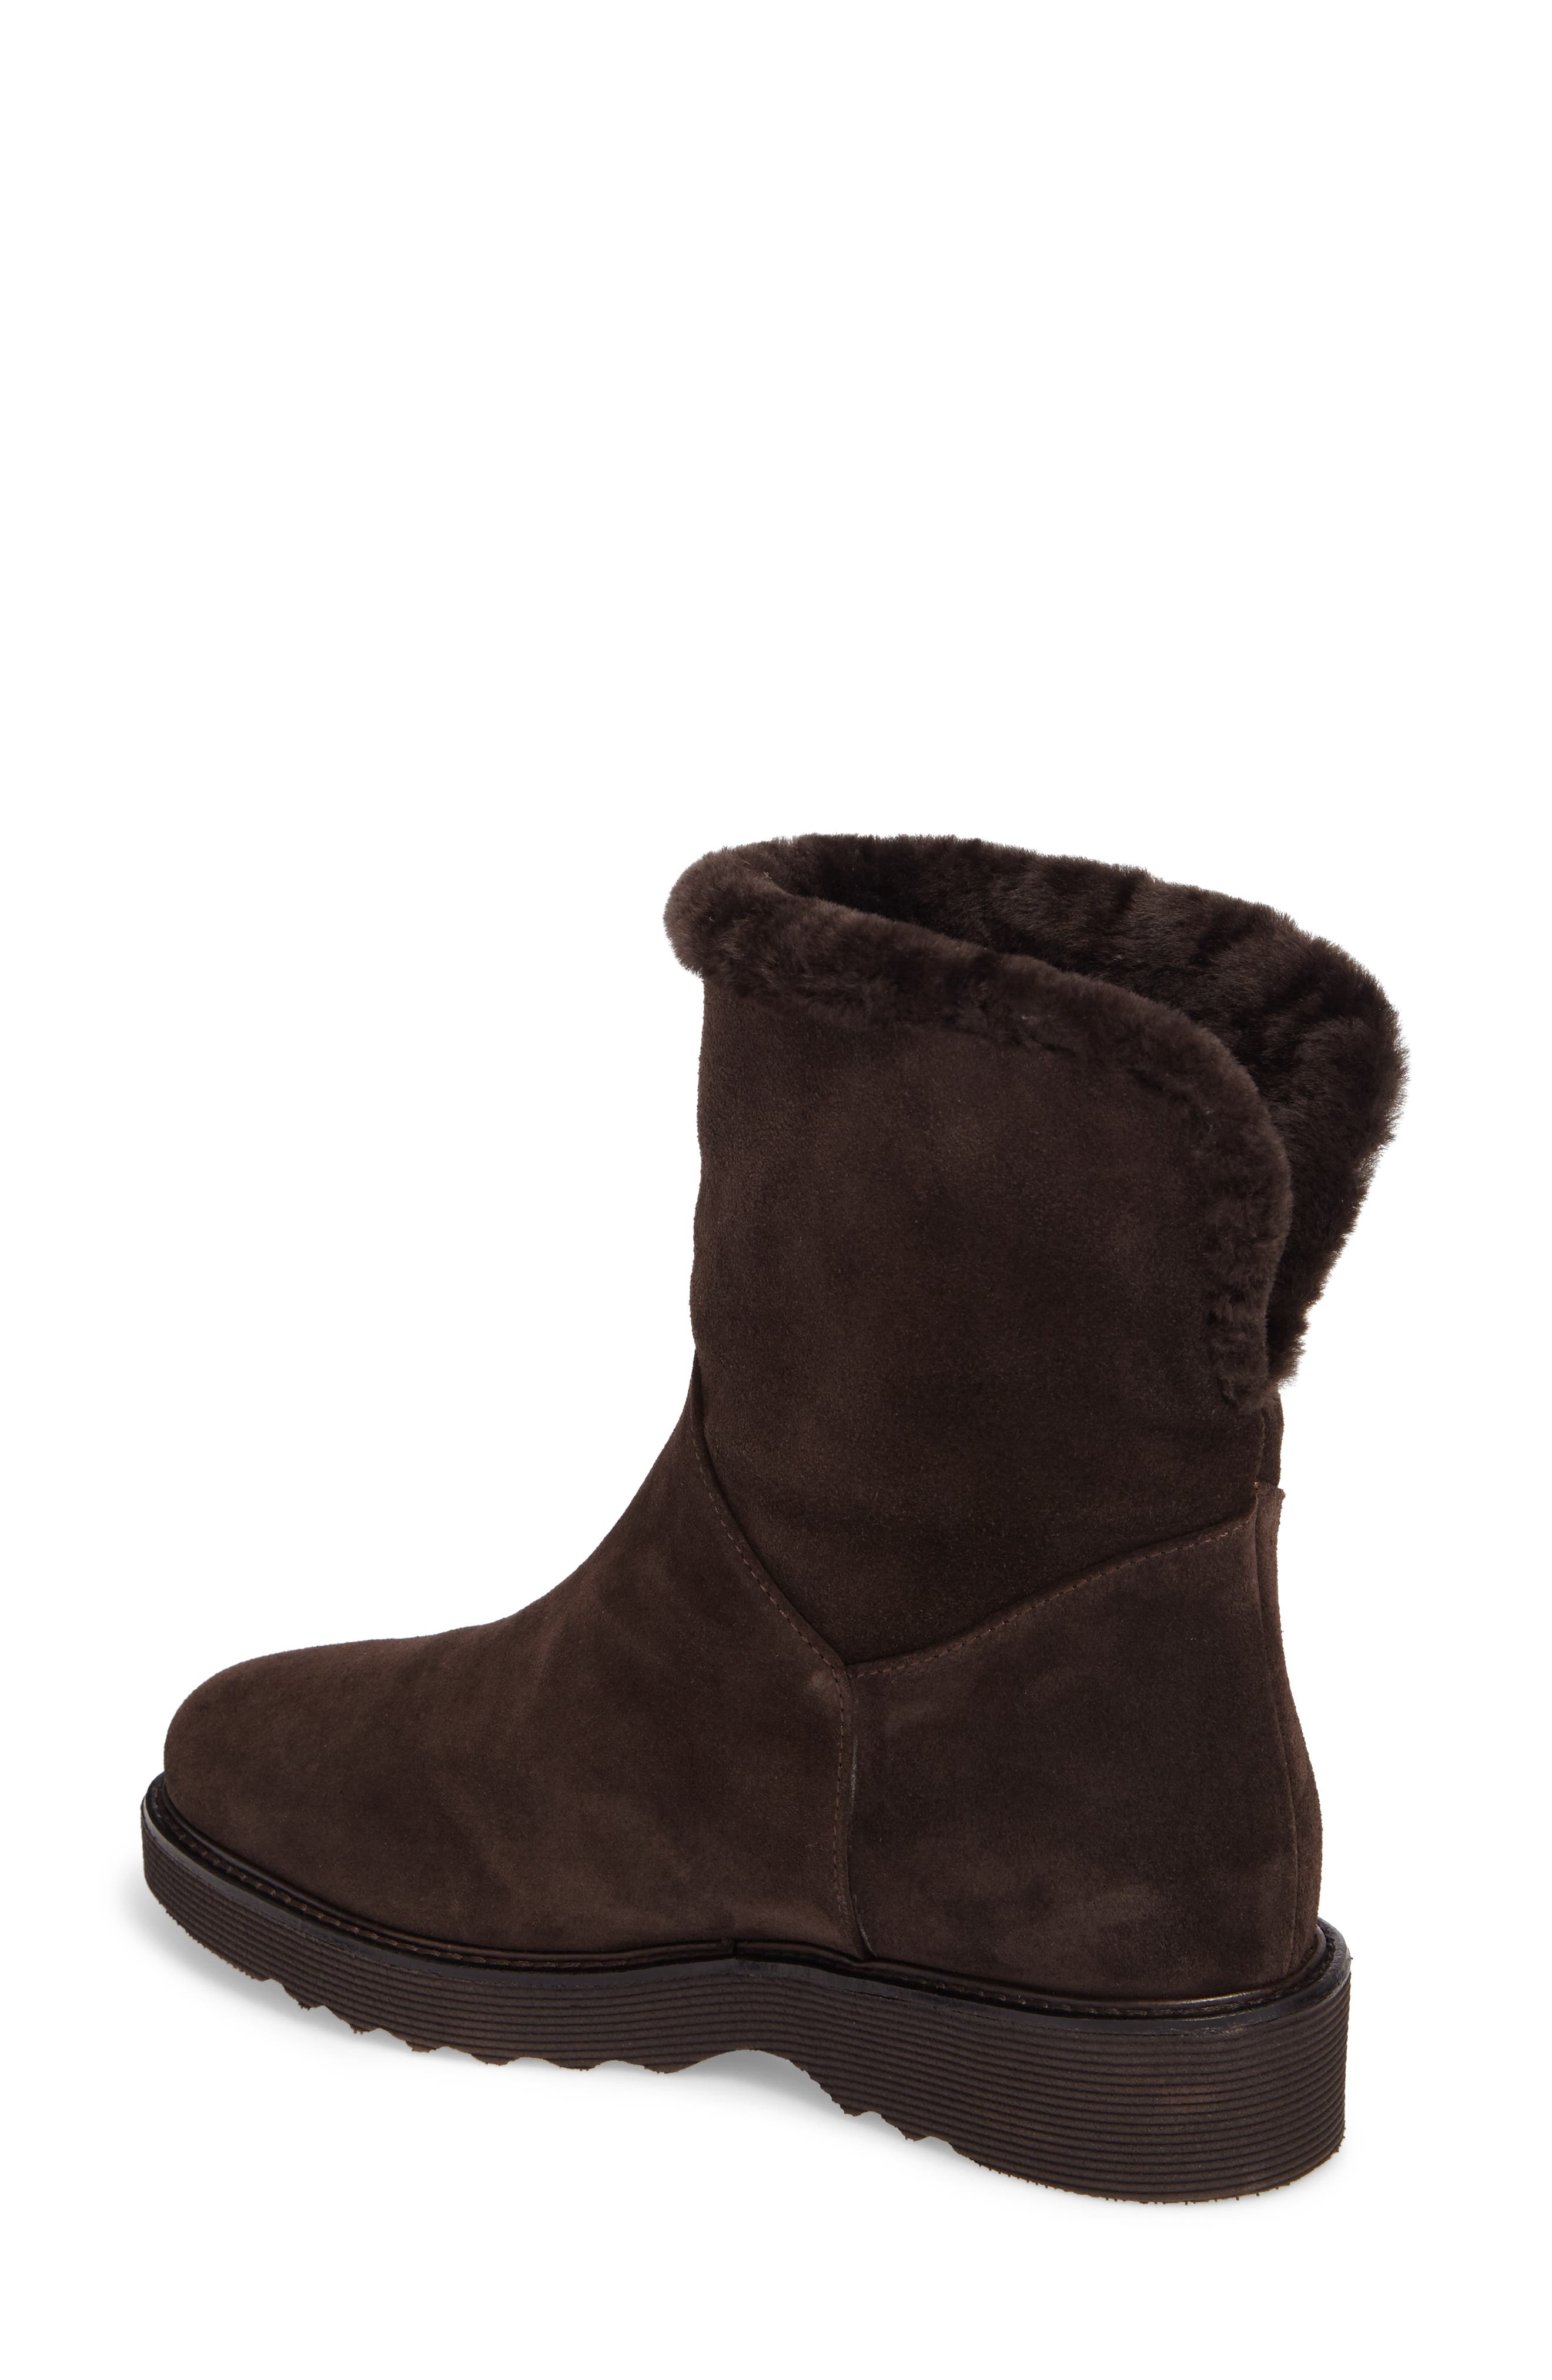 Kimberly Weatherproof Genuine Shearling Bootie,                             Alternate thumbnail 8, color,